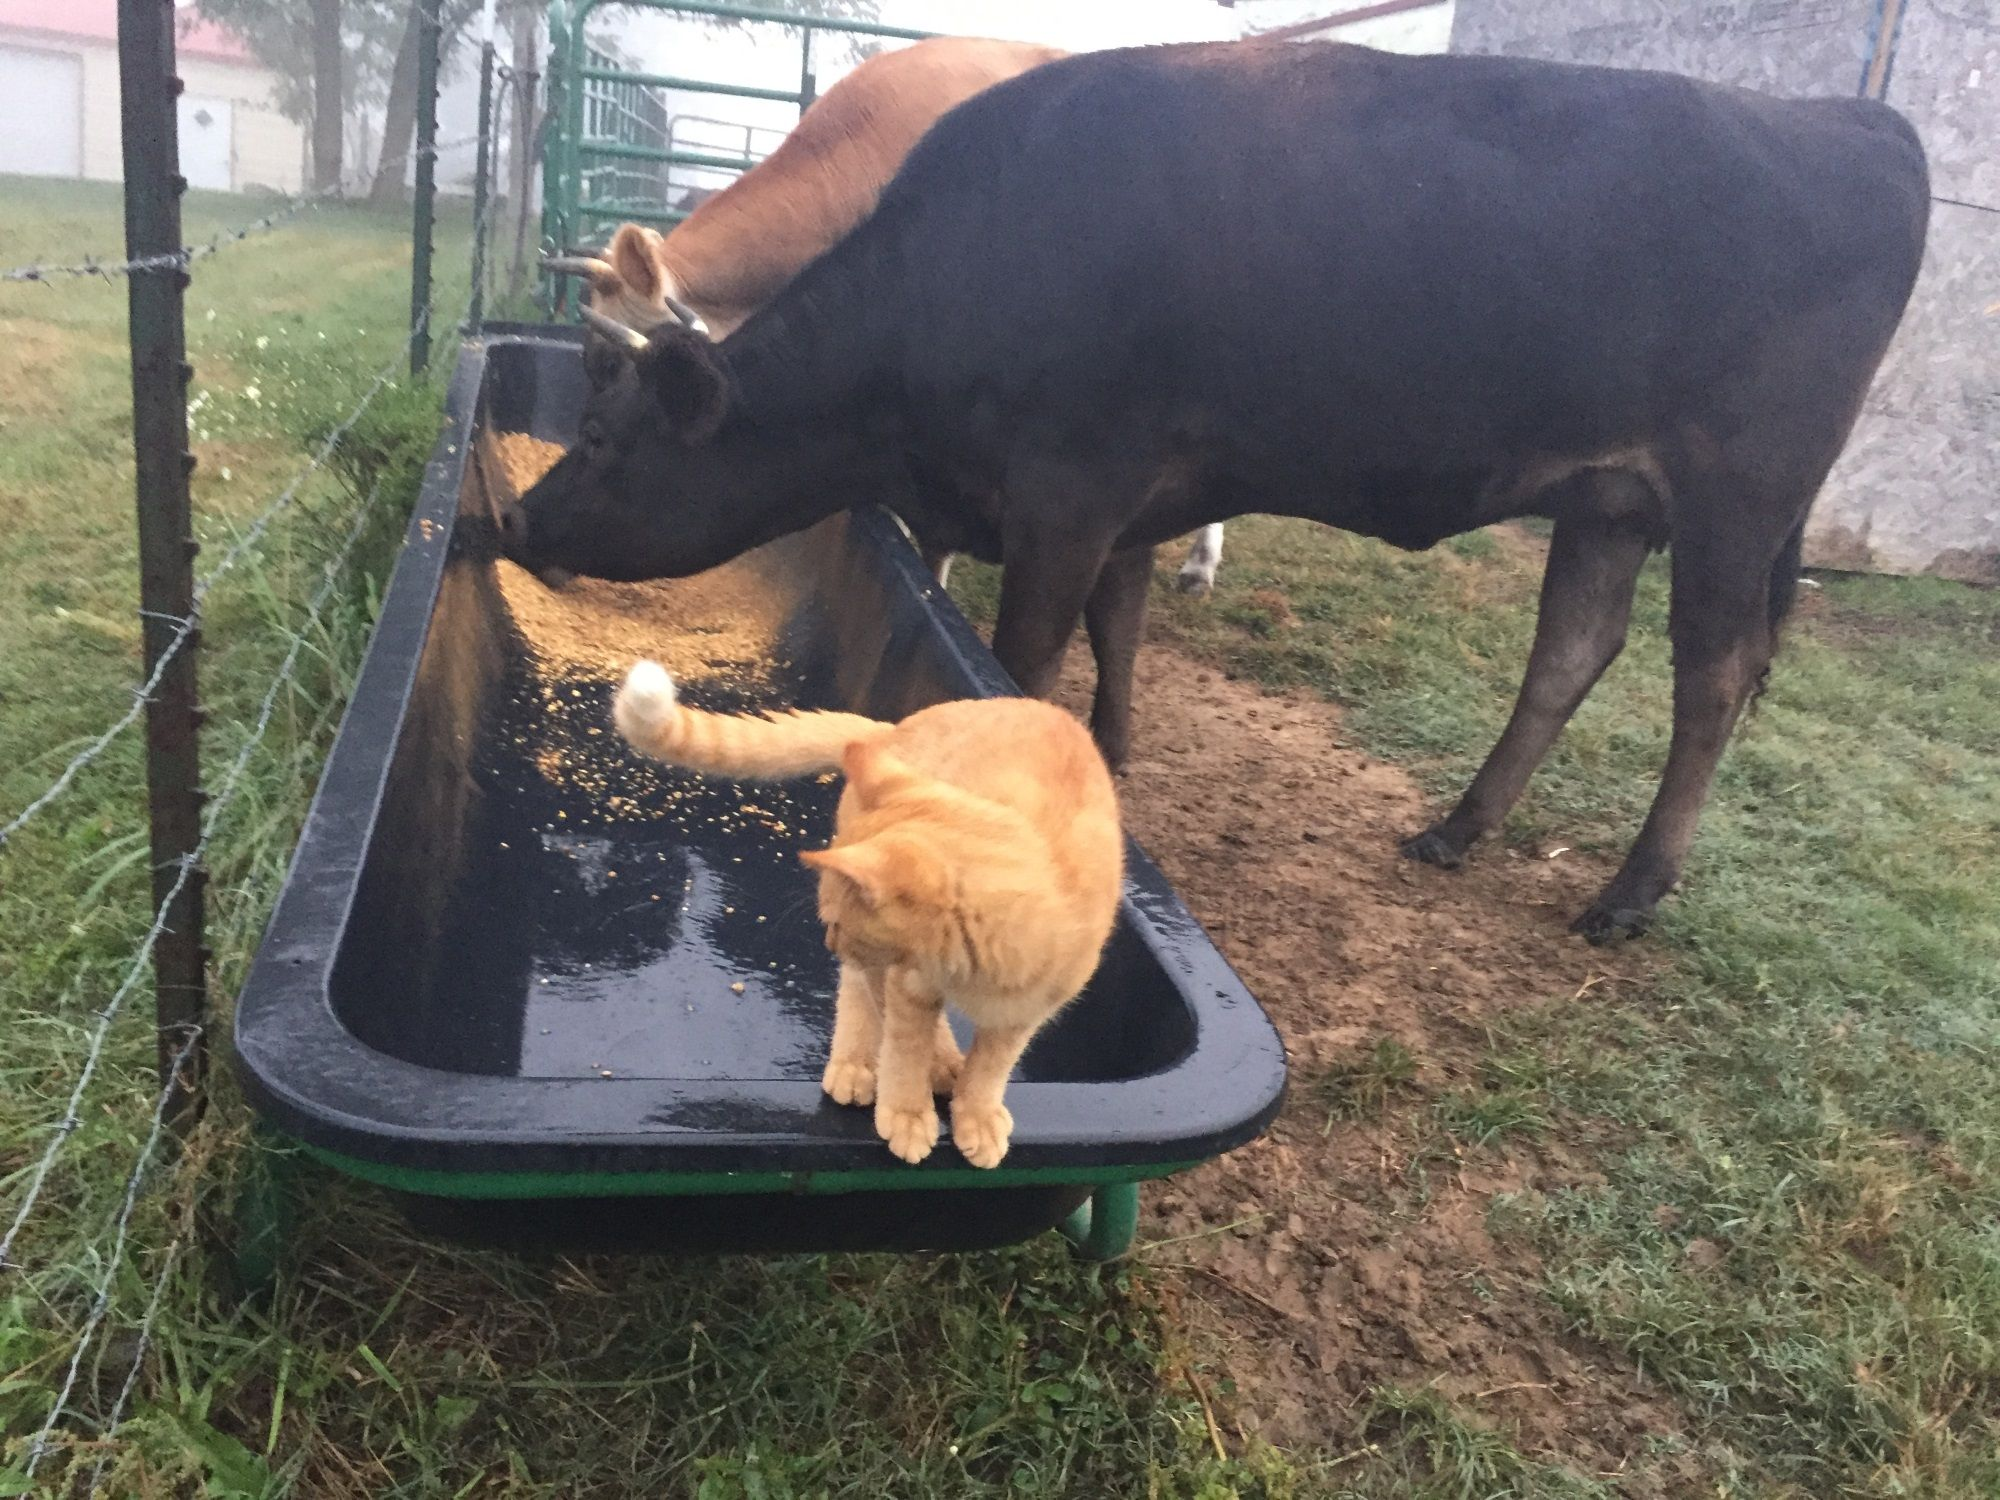 Tiny Making Sure The Cows Eat Their Feed This Morning Kitty Cows Morning Kitten Cats Cat Catsofinstag Goat Milk Soap Cat Day Homemade Goat Milk Soap